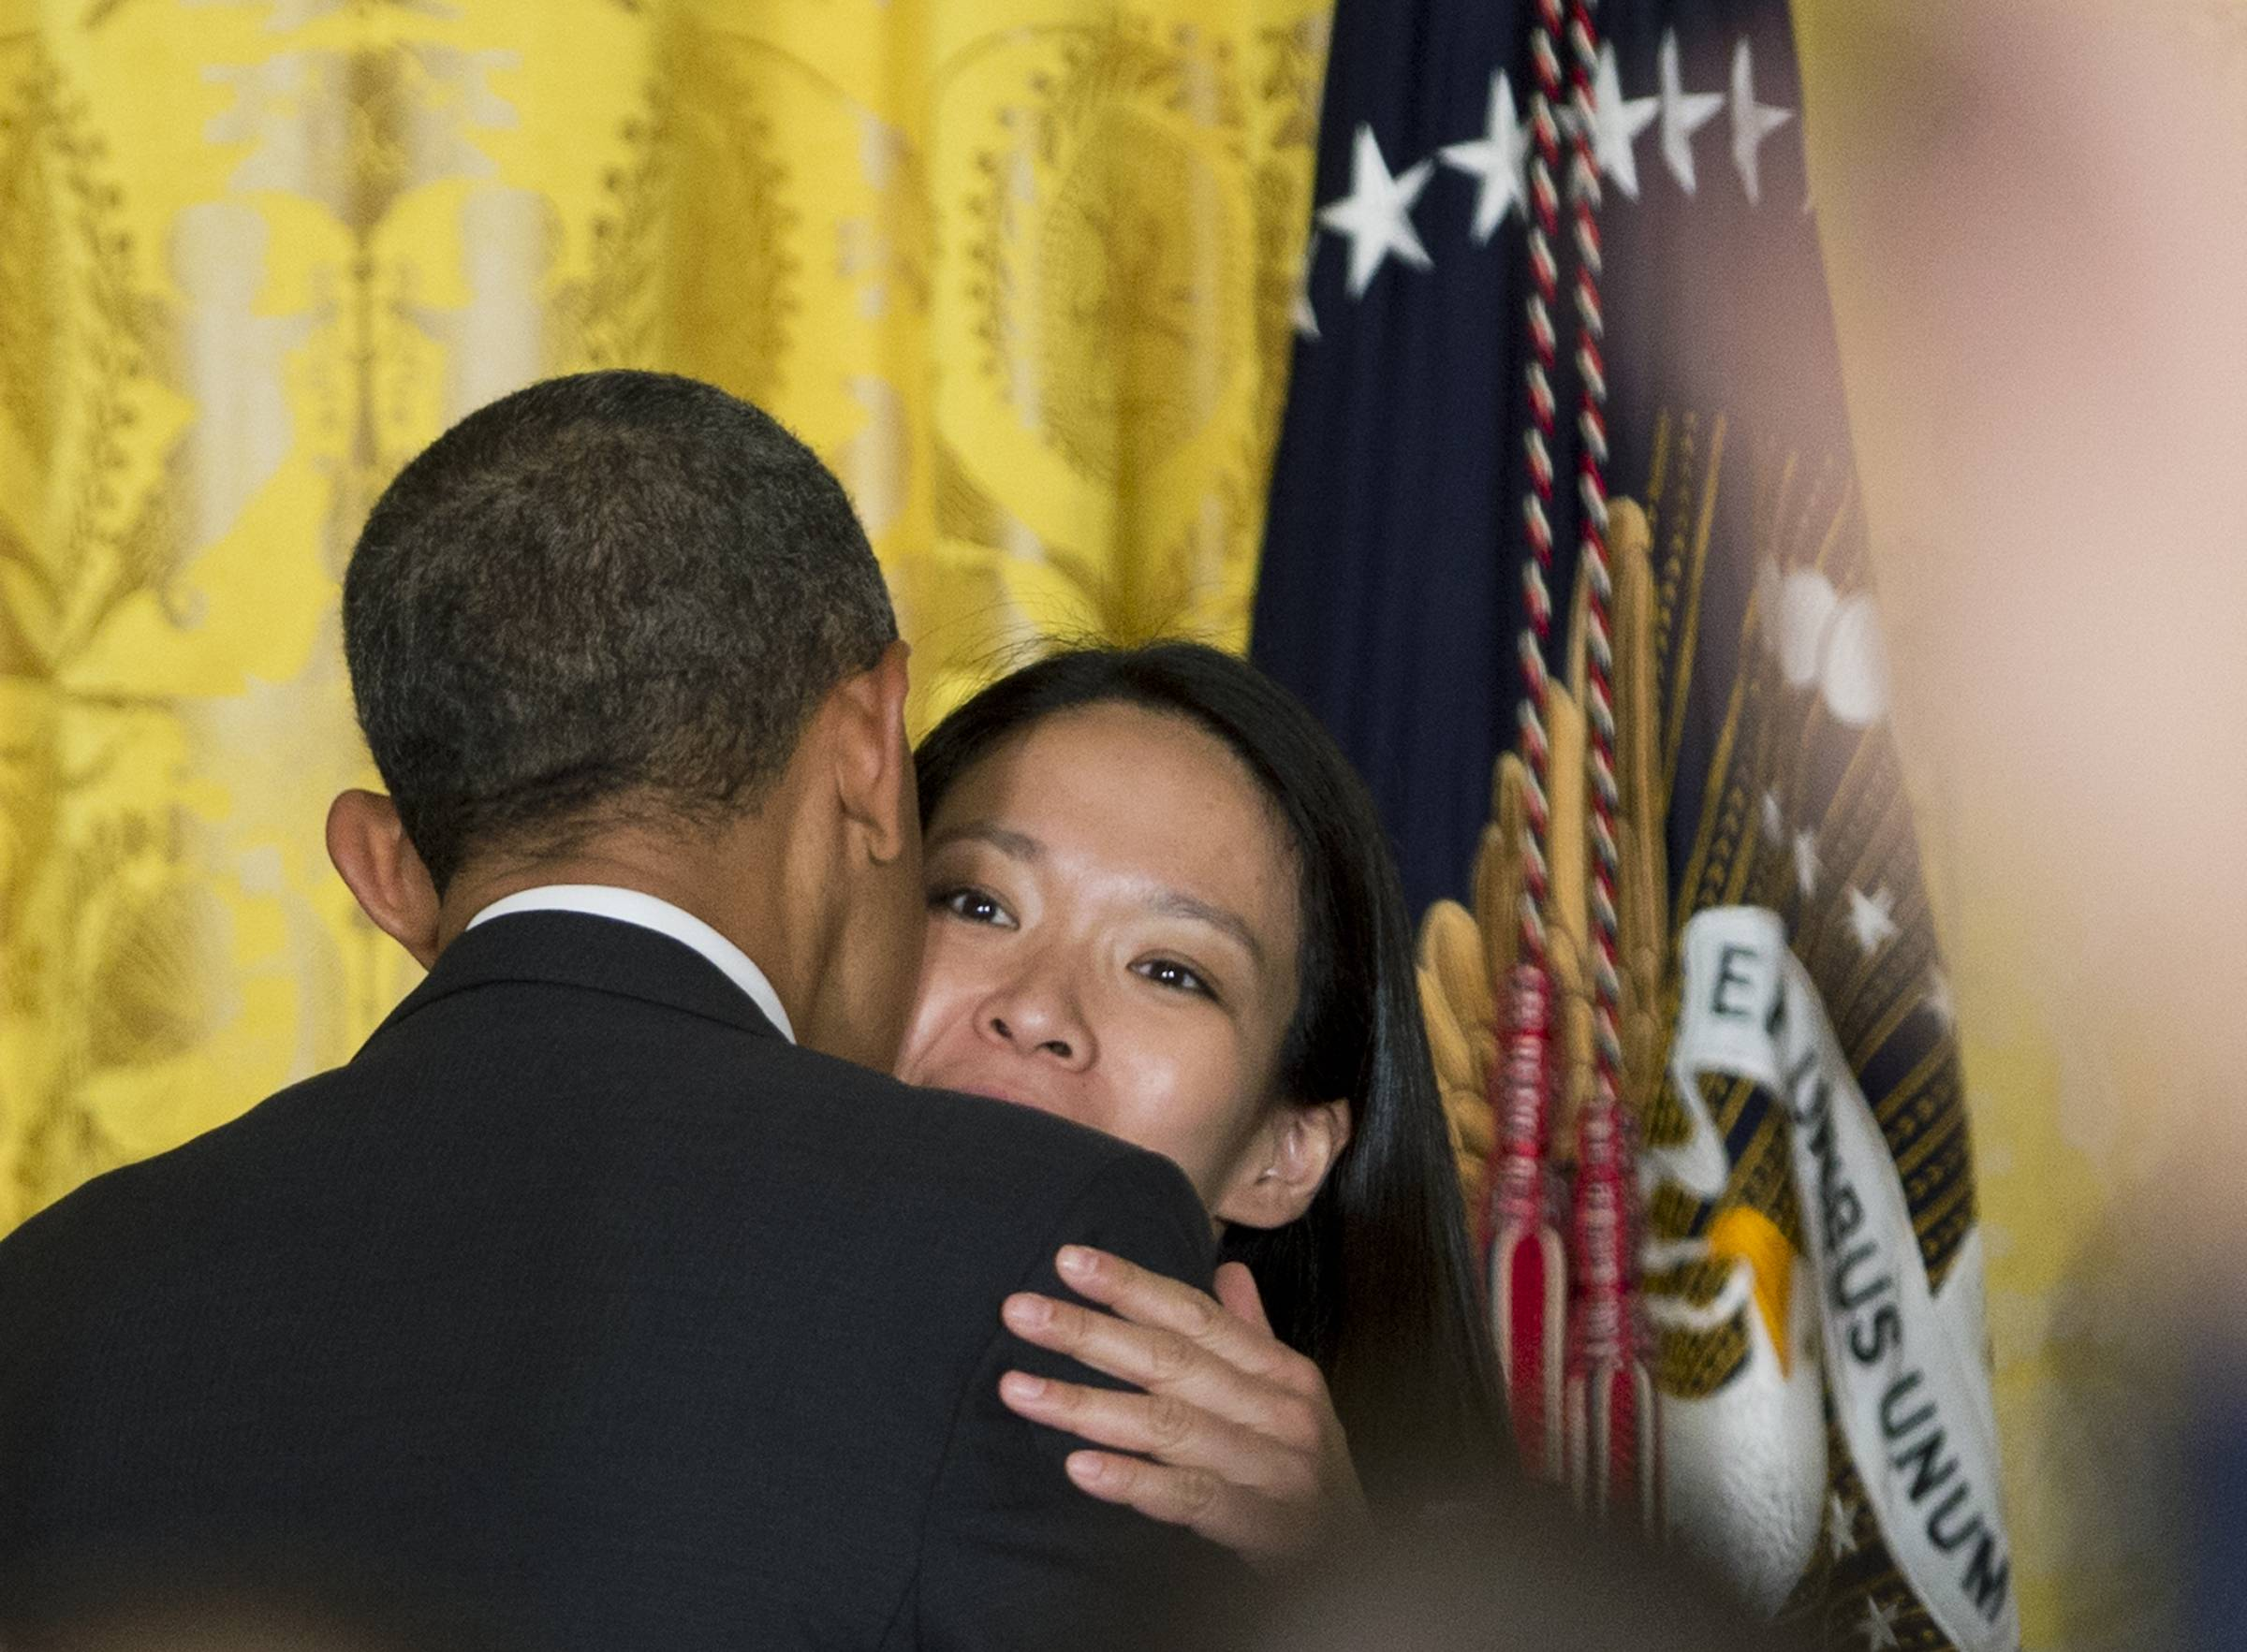 President Barack Obama gives Julie Chu, right, of Fairfield, Conn., a member of the 2014 U.S. Women's Olympic Ice Hockey team, a kiss during a ceremony welcoming members of the United States teams and delegations from the 2014 Winter Olympic and Paralympic Winter Games to the White House last week.